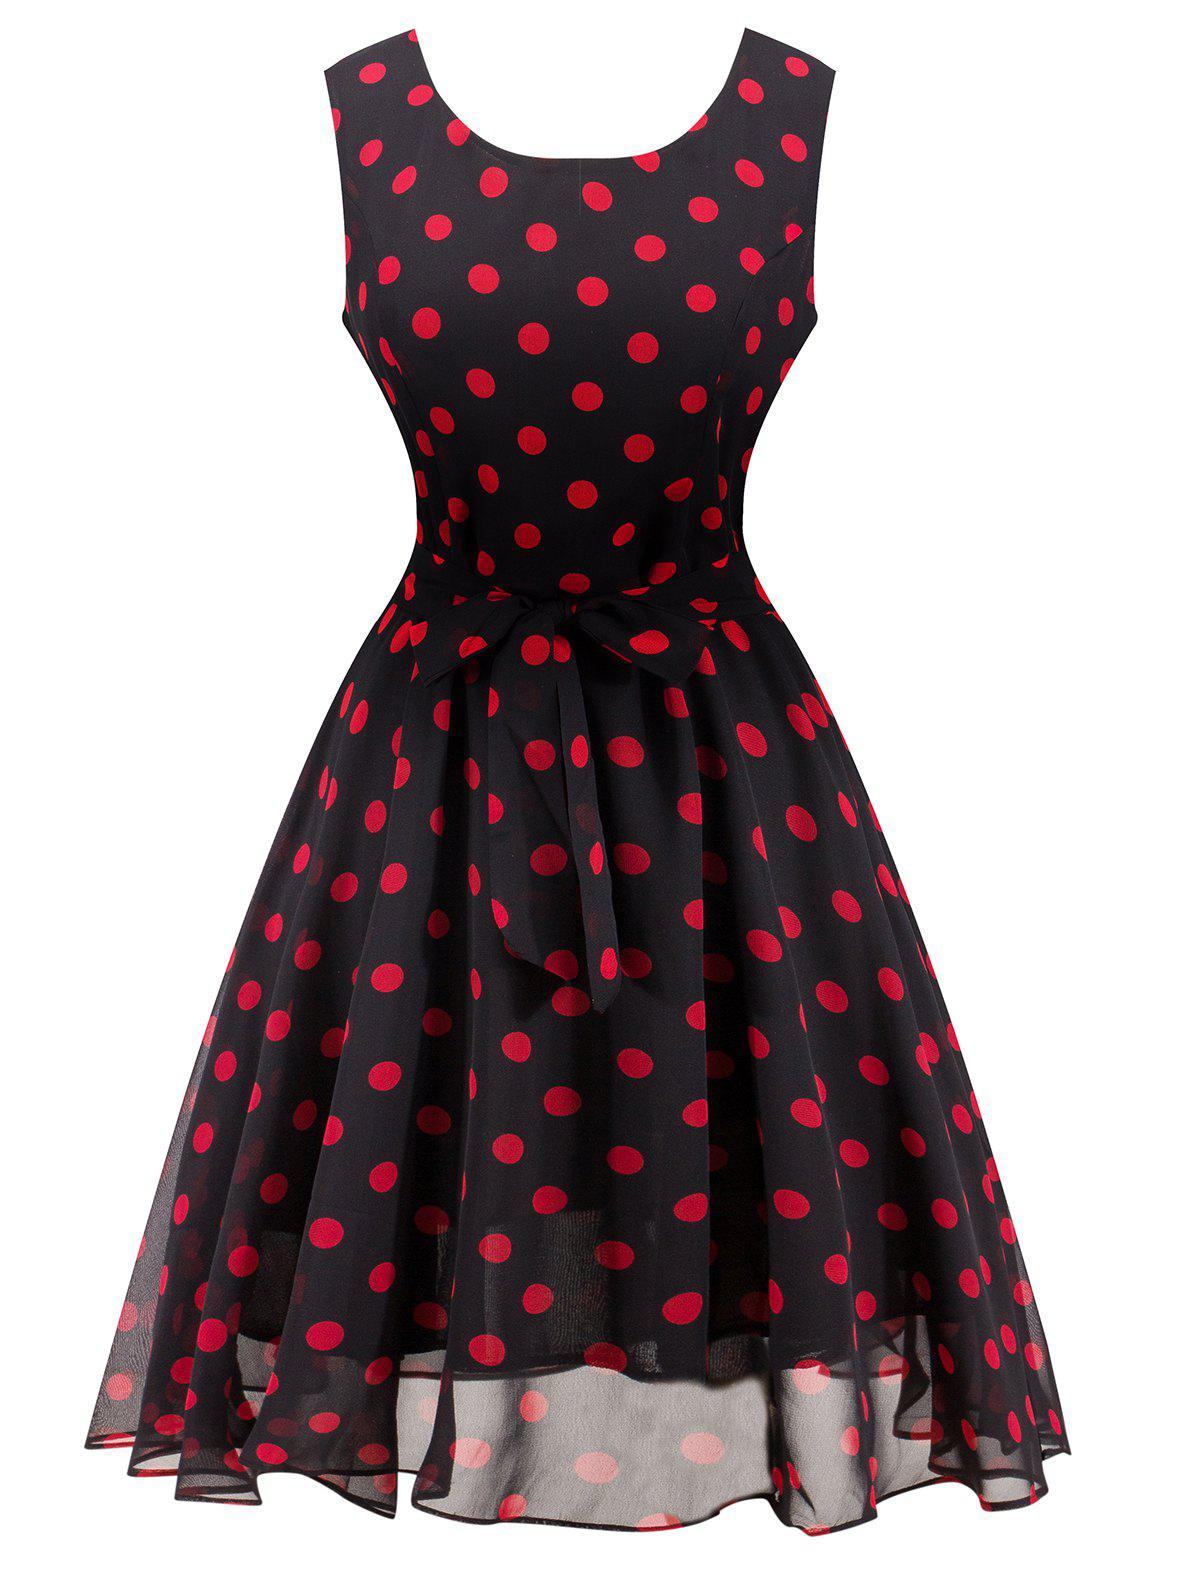 Latest Retro Belted High Waisted Polka Dot Dress